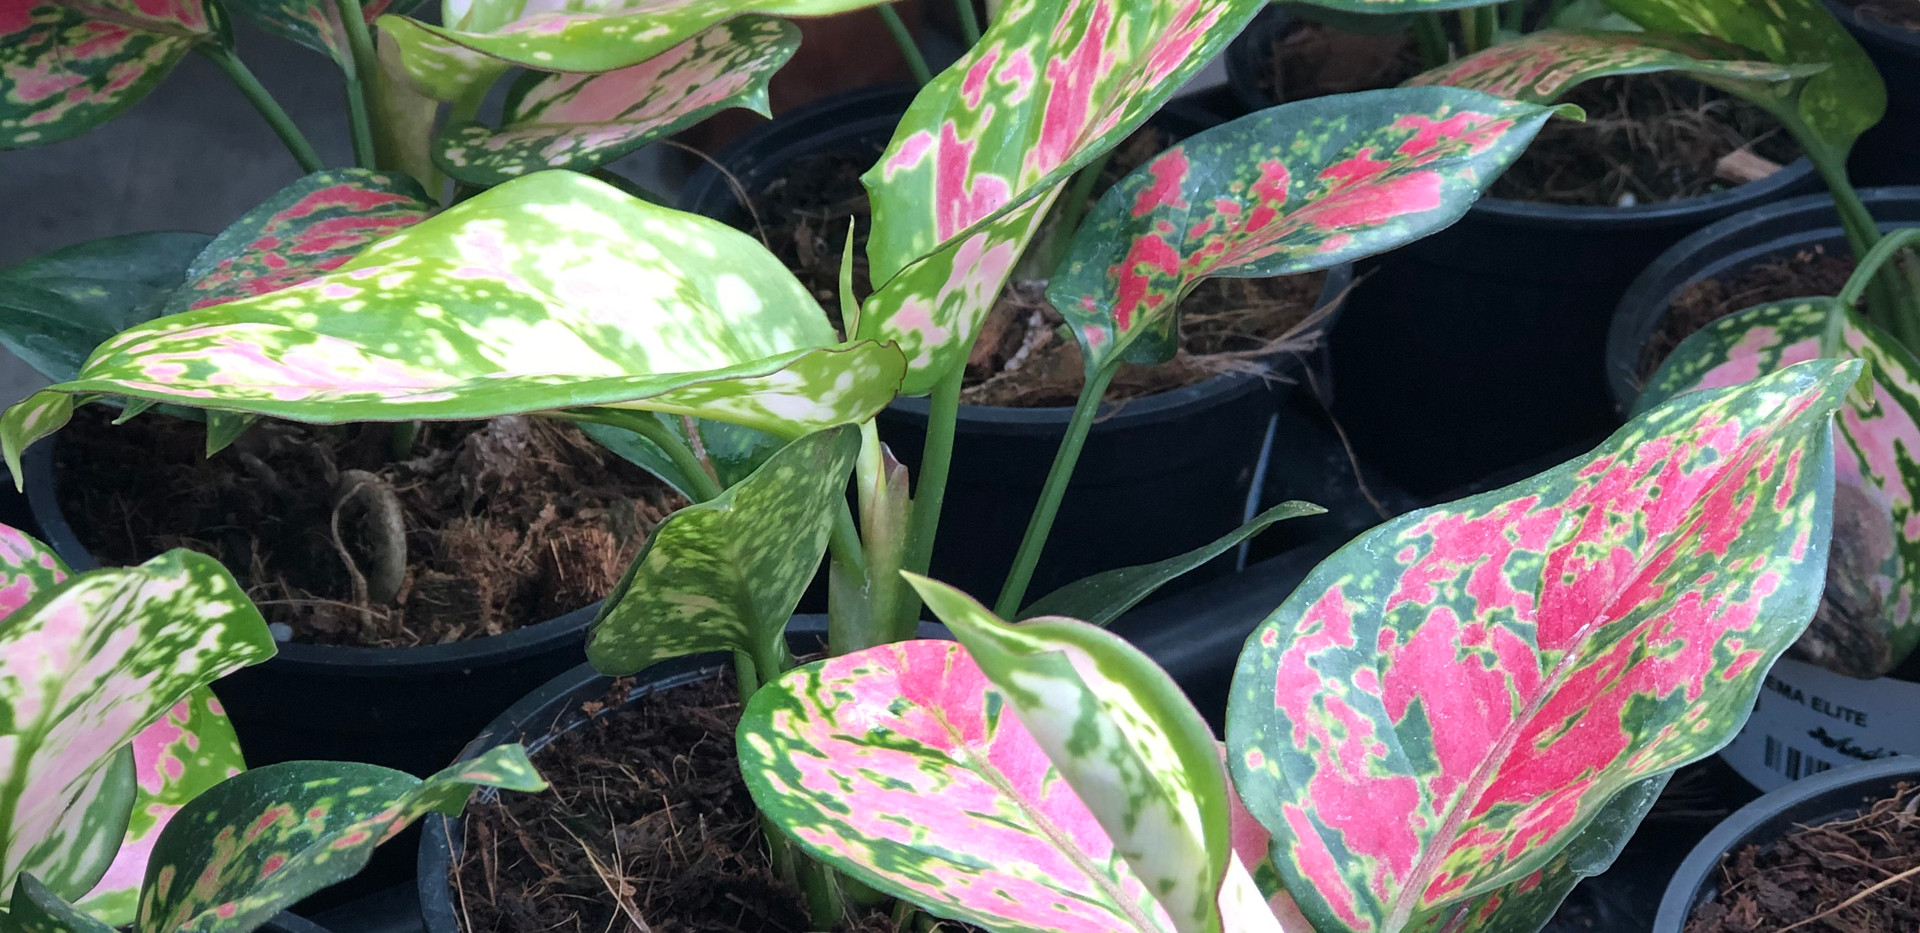 Aglaonema elite_5677.jpg